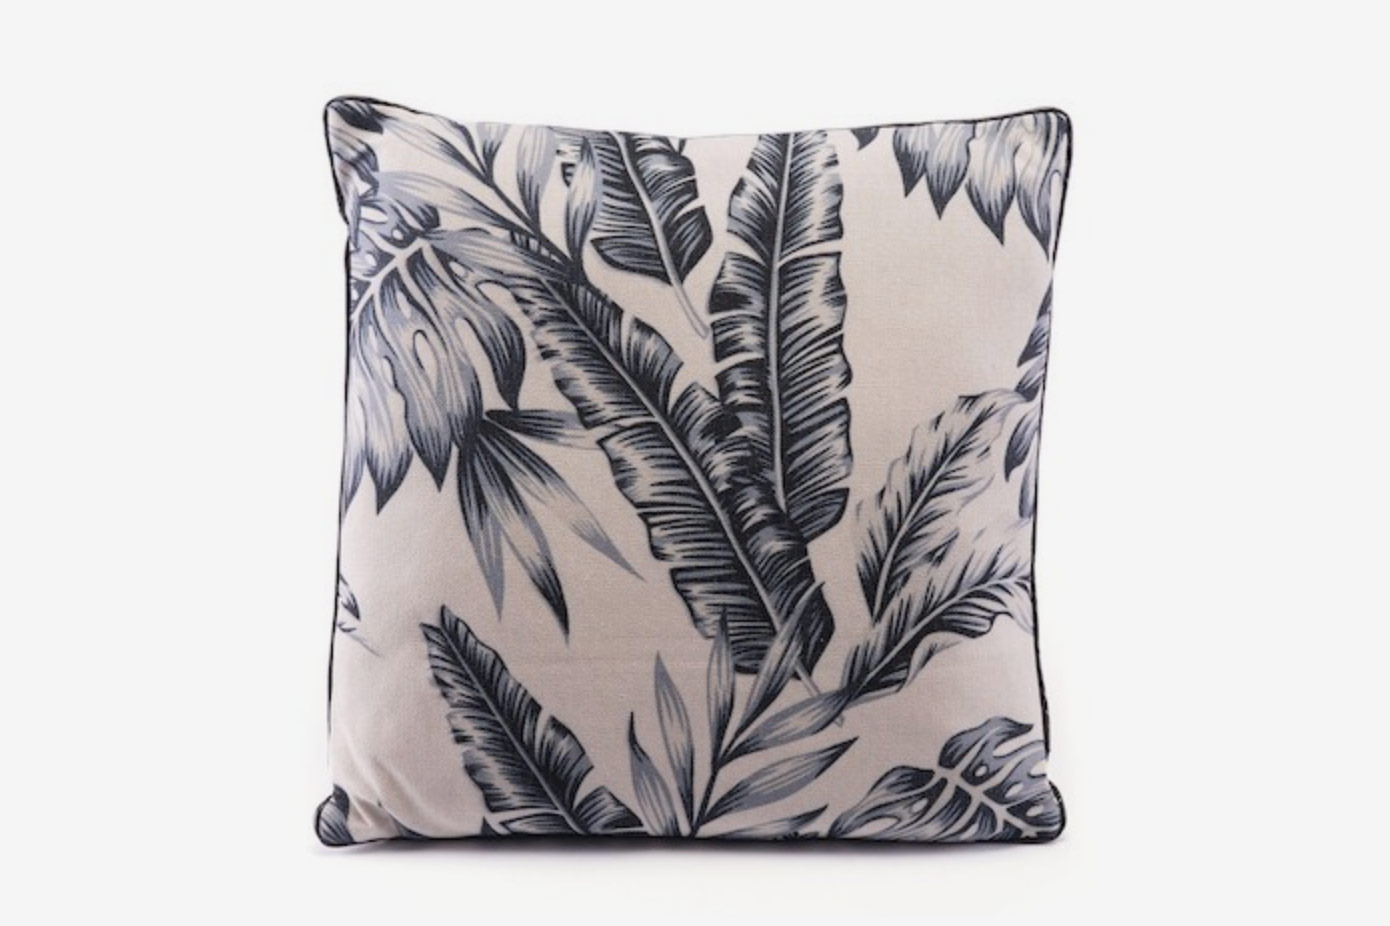 Zuo Decor Black/Beige Leaves Pillow